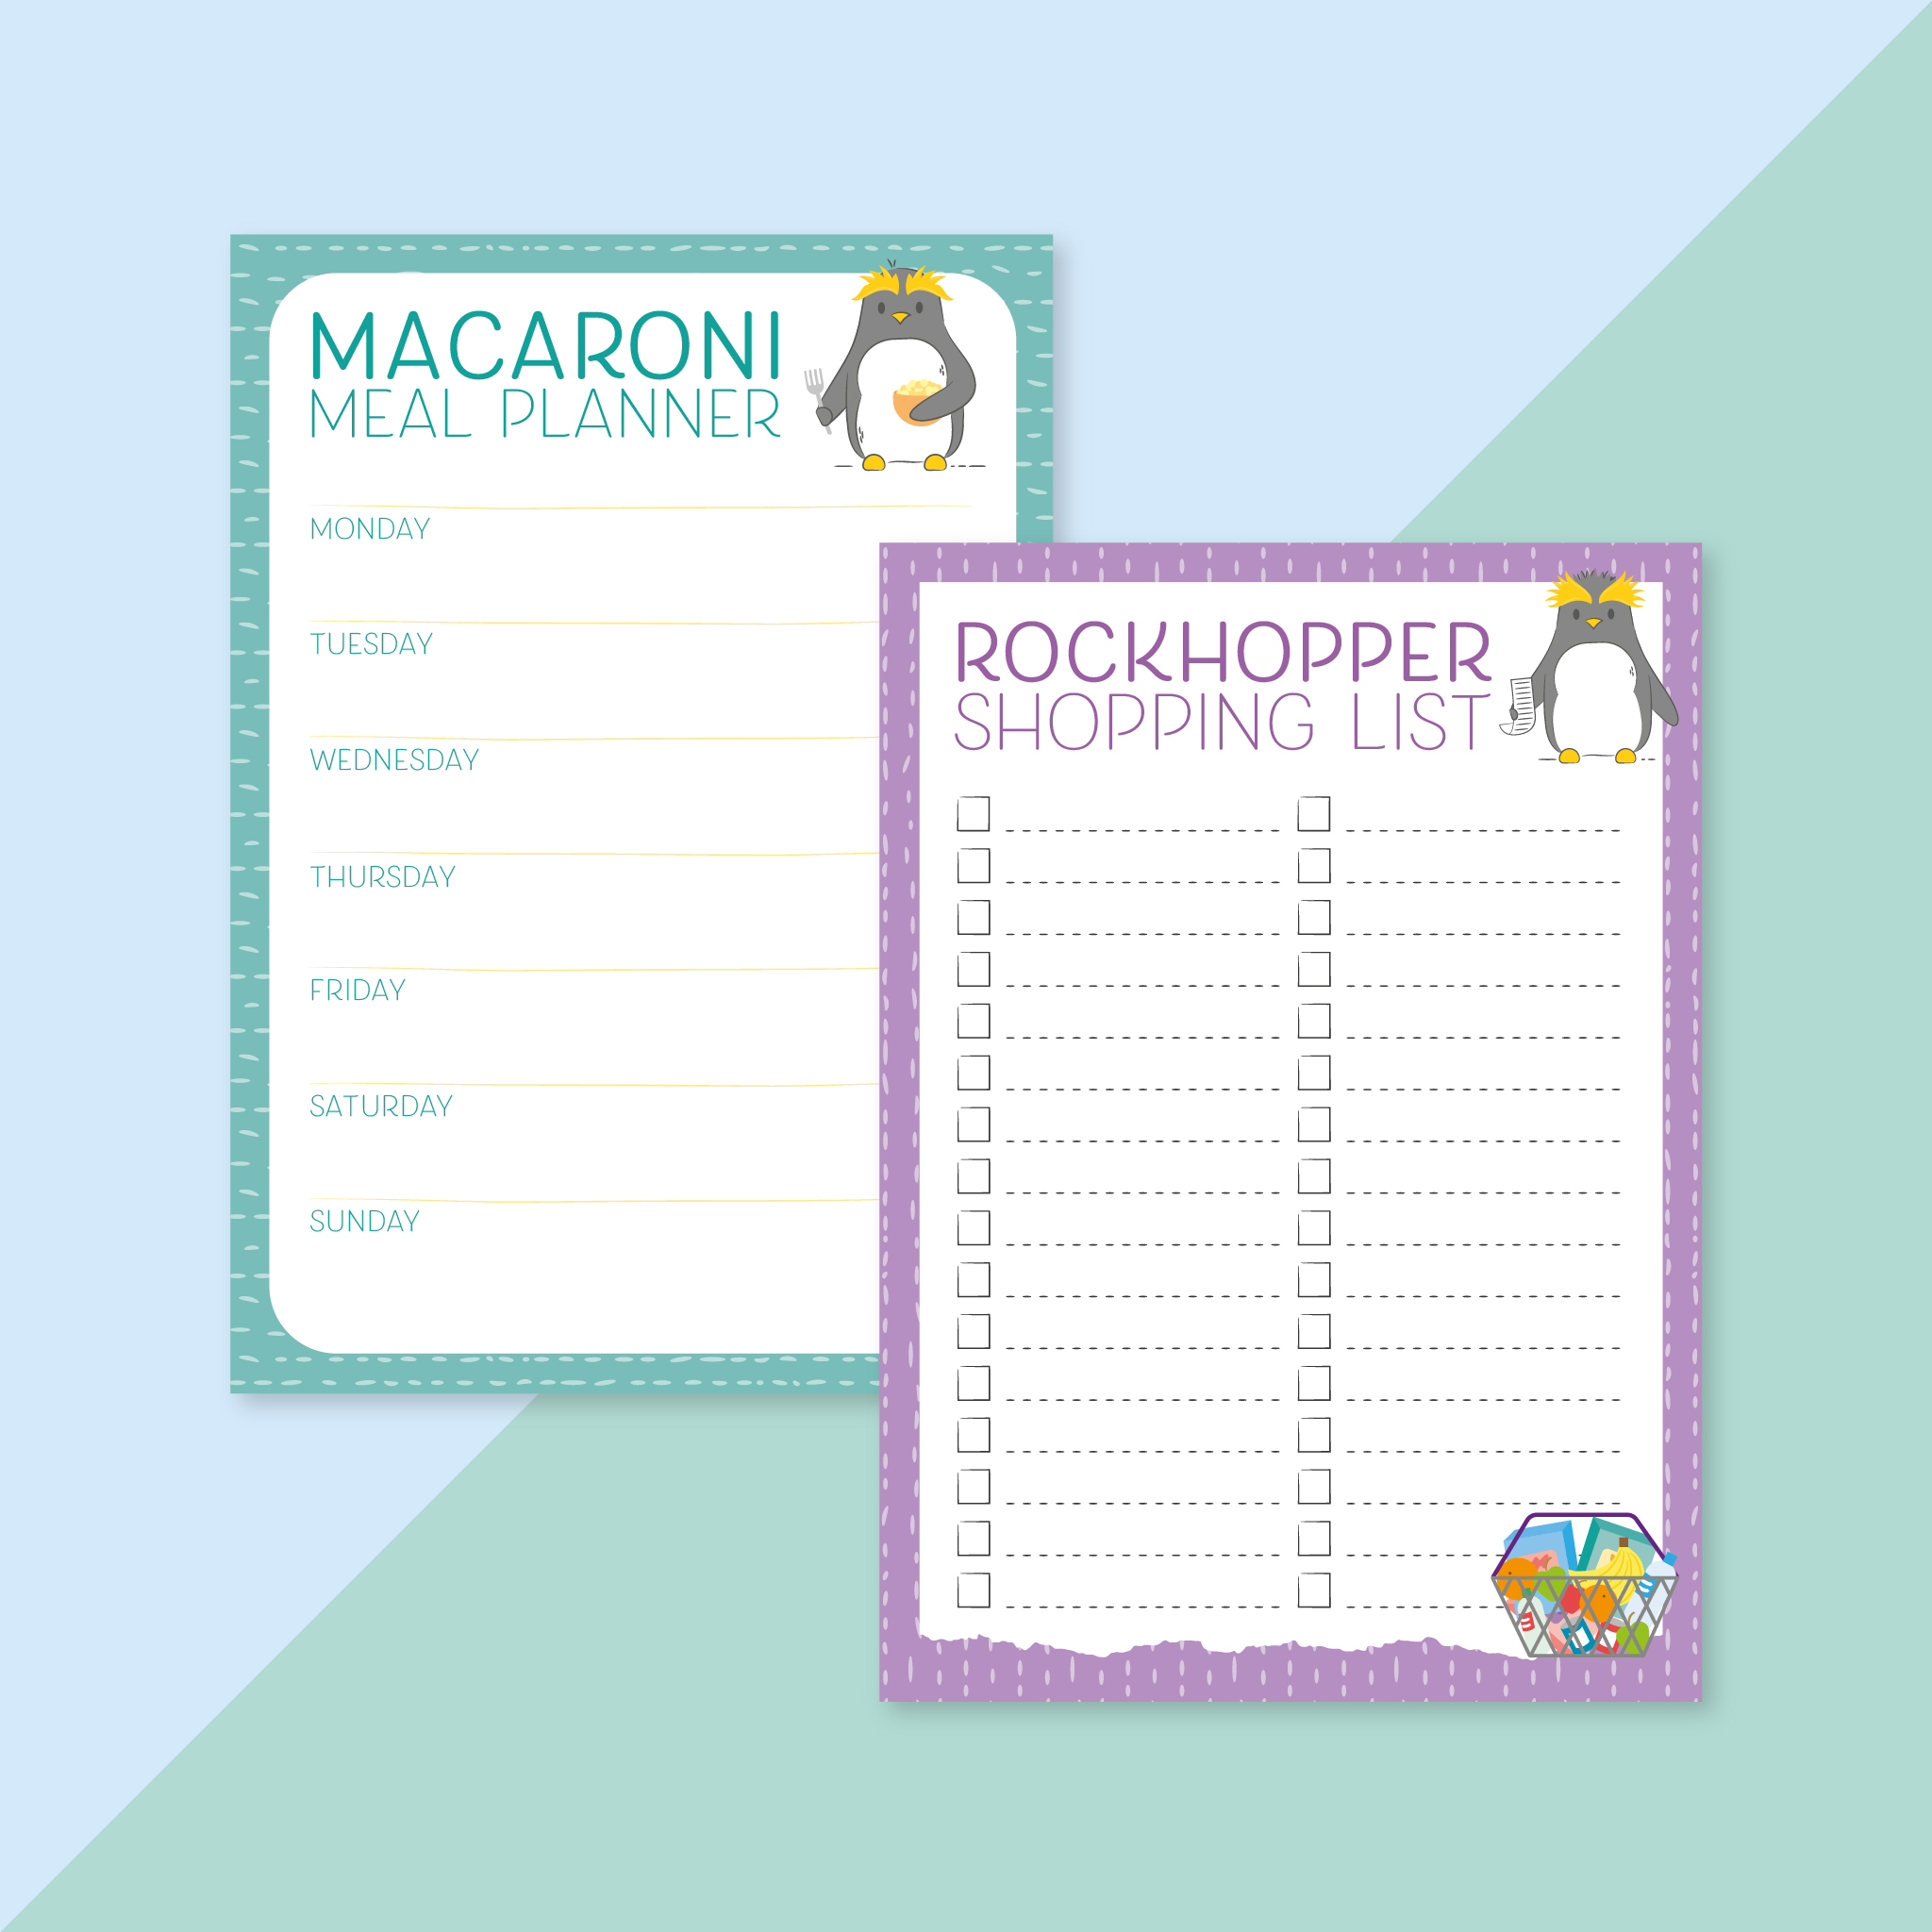 An image of a set of 2 notepads: the macaroni meal planner and the rockhopper shopping list.